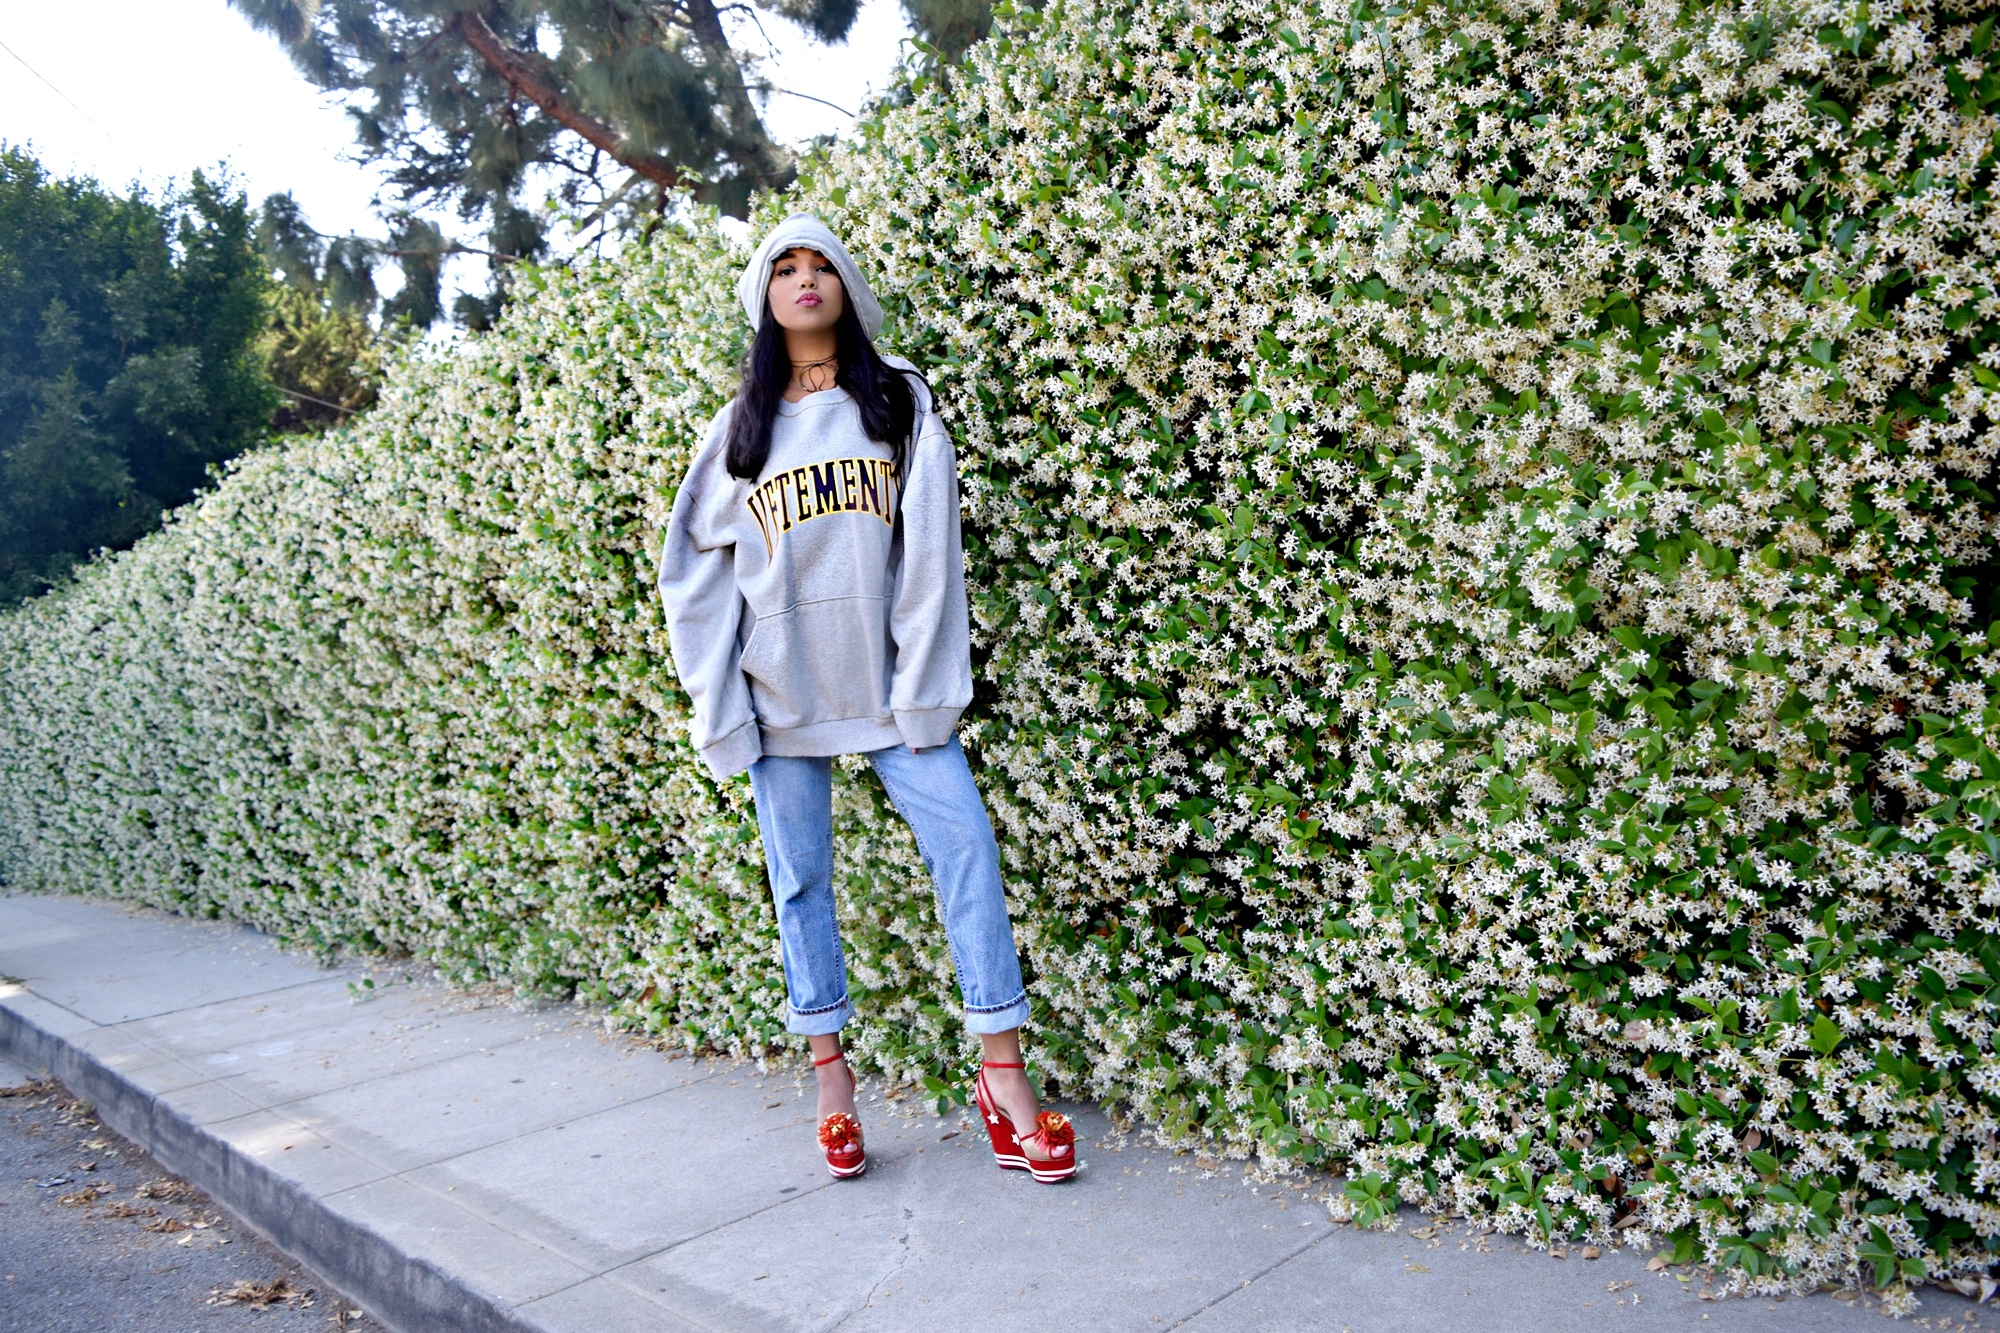 Vetements Hoodie, Spring Street Style Inspiration: To Style, With Love